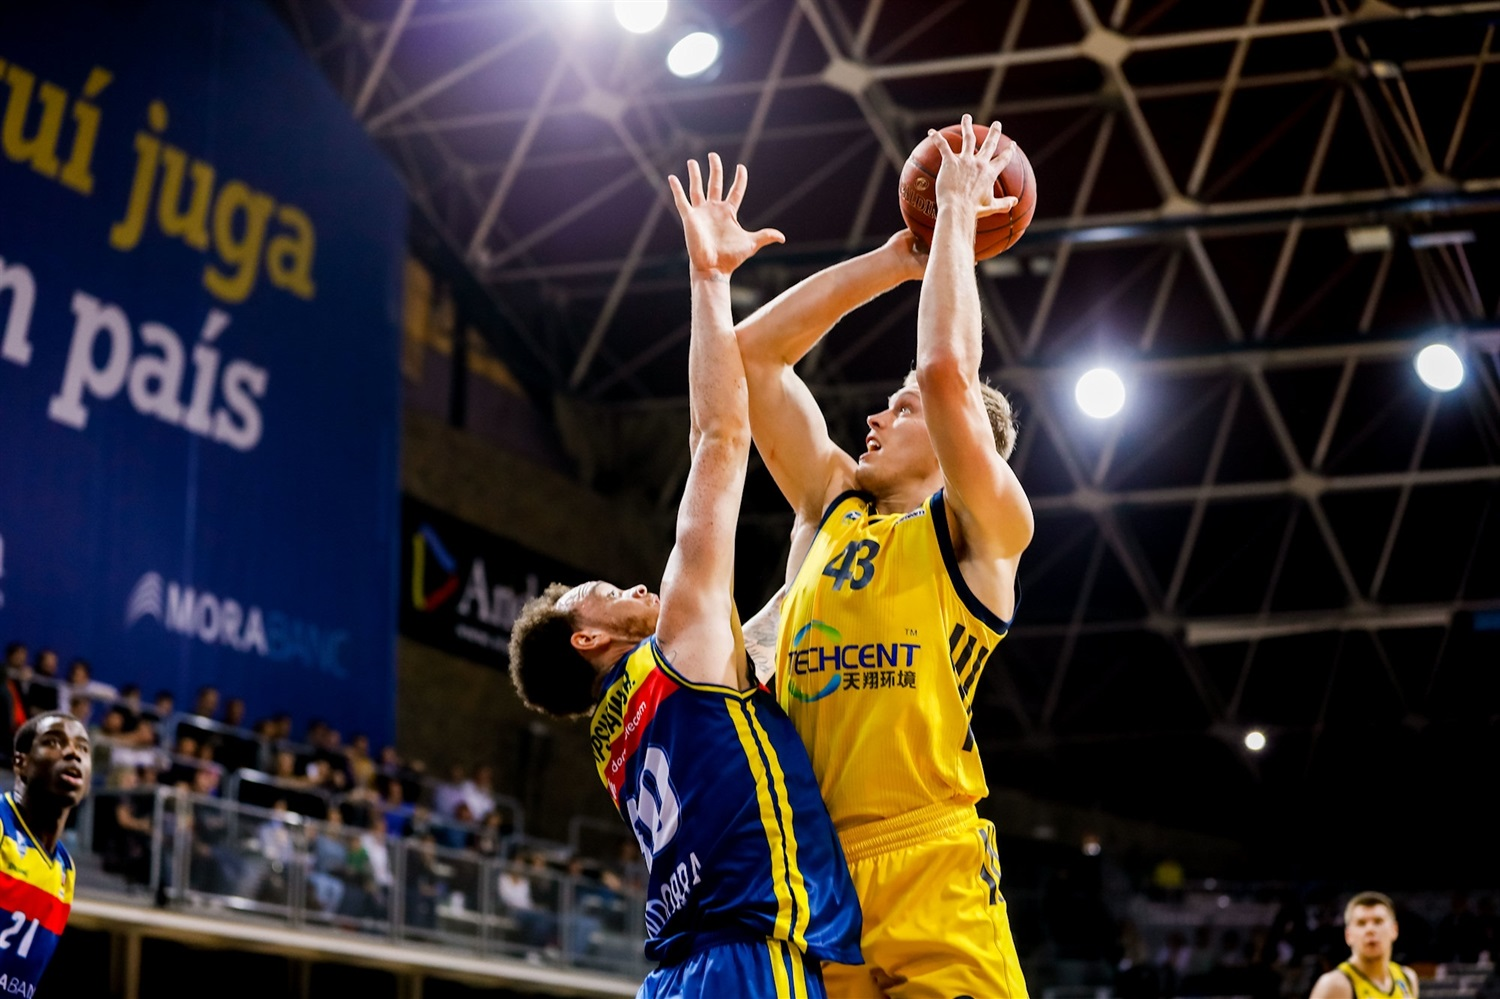 Luke Sikma - ALBA Berlin (photo Marti Imatge - Andorra) - EC18